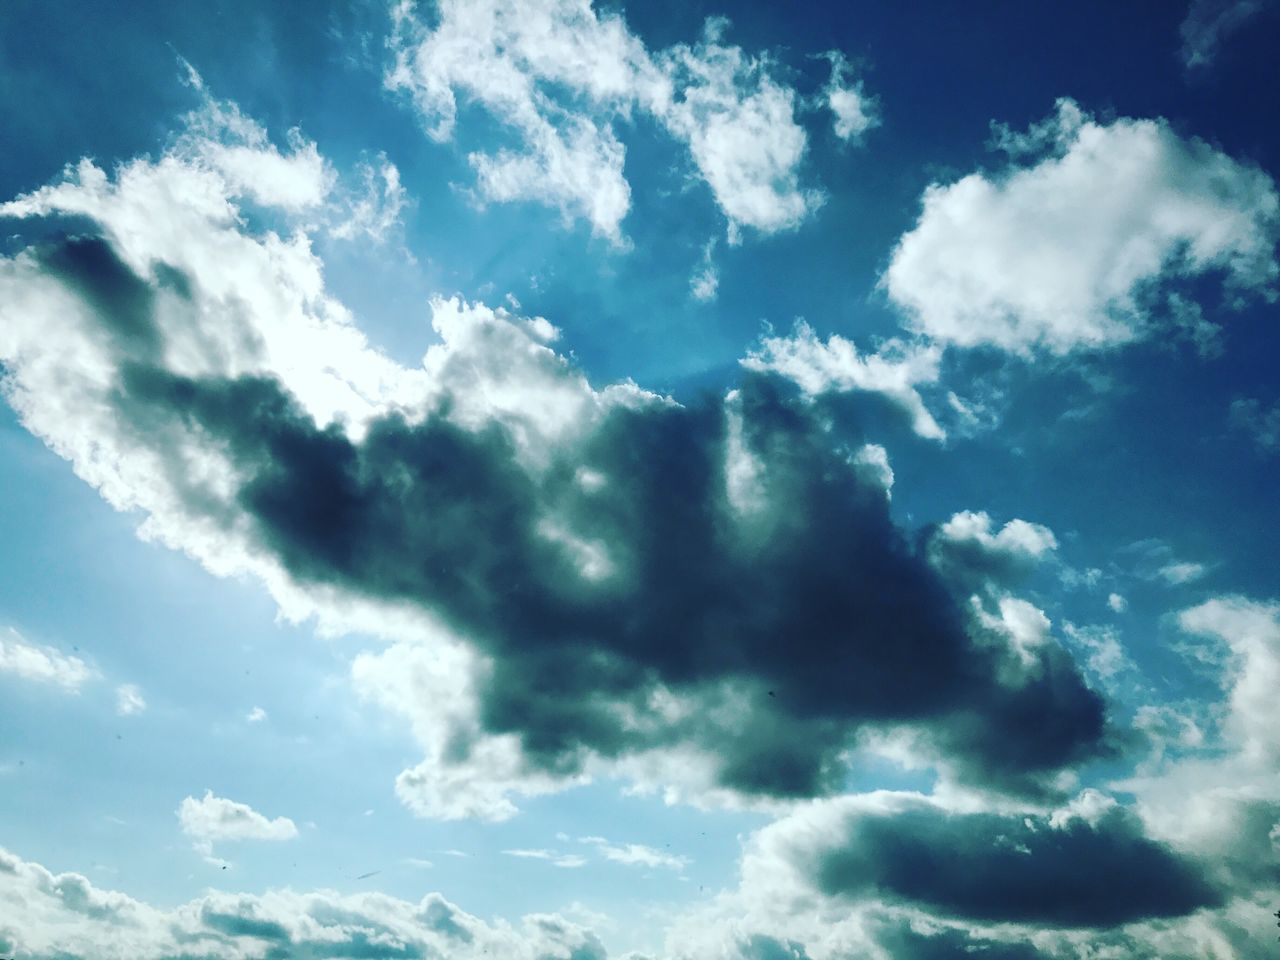 sky, beauty in nature, cloud - sky, nature, low angle view, backgrounds, sky only, scenics, cloudscape, sunbeam, weather, day, outdoors, full frame, no people, blue, tranquility, sunlight